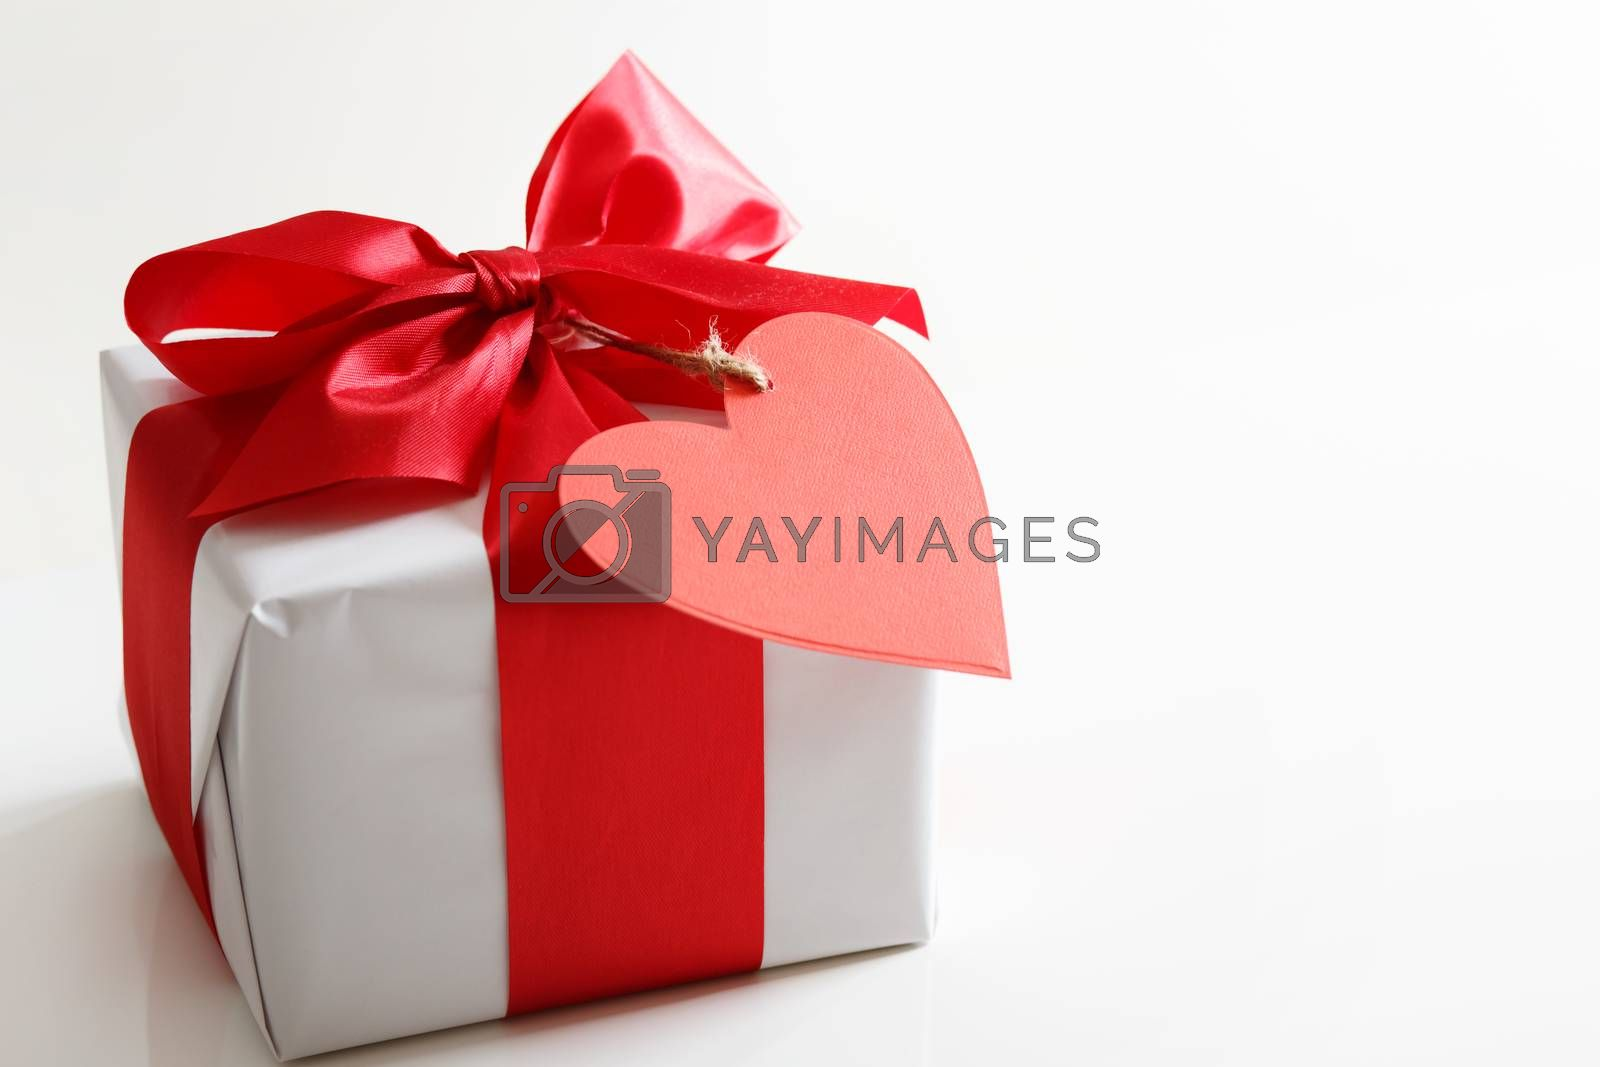 Royalty free image of Gift box with red heart tag by melpomene